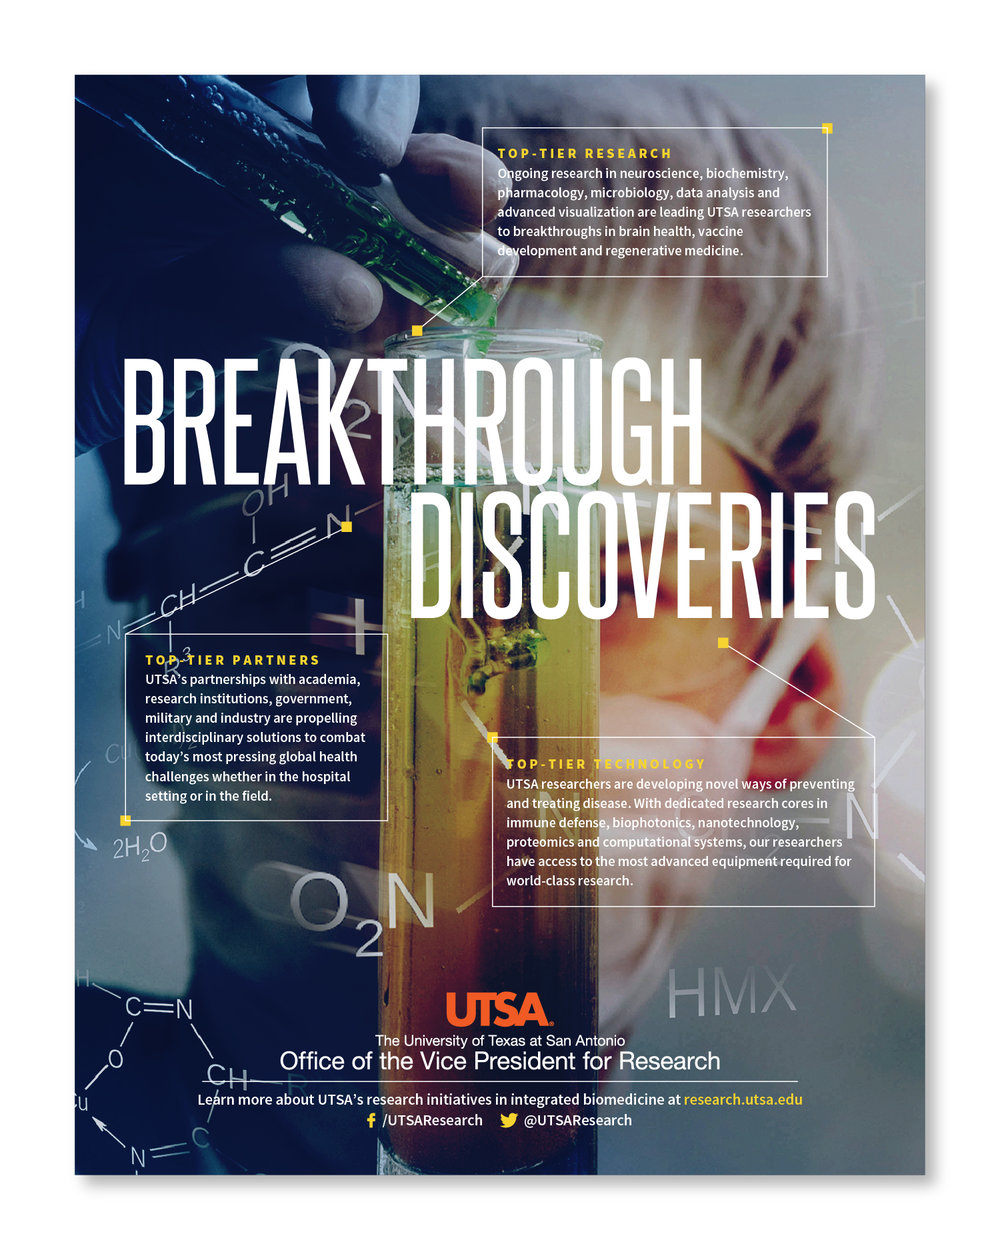 UTSA Research